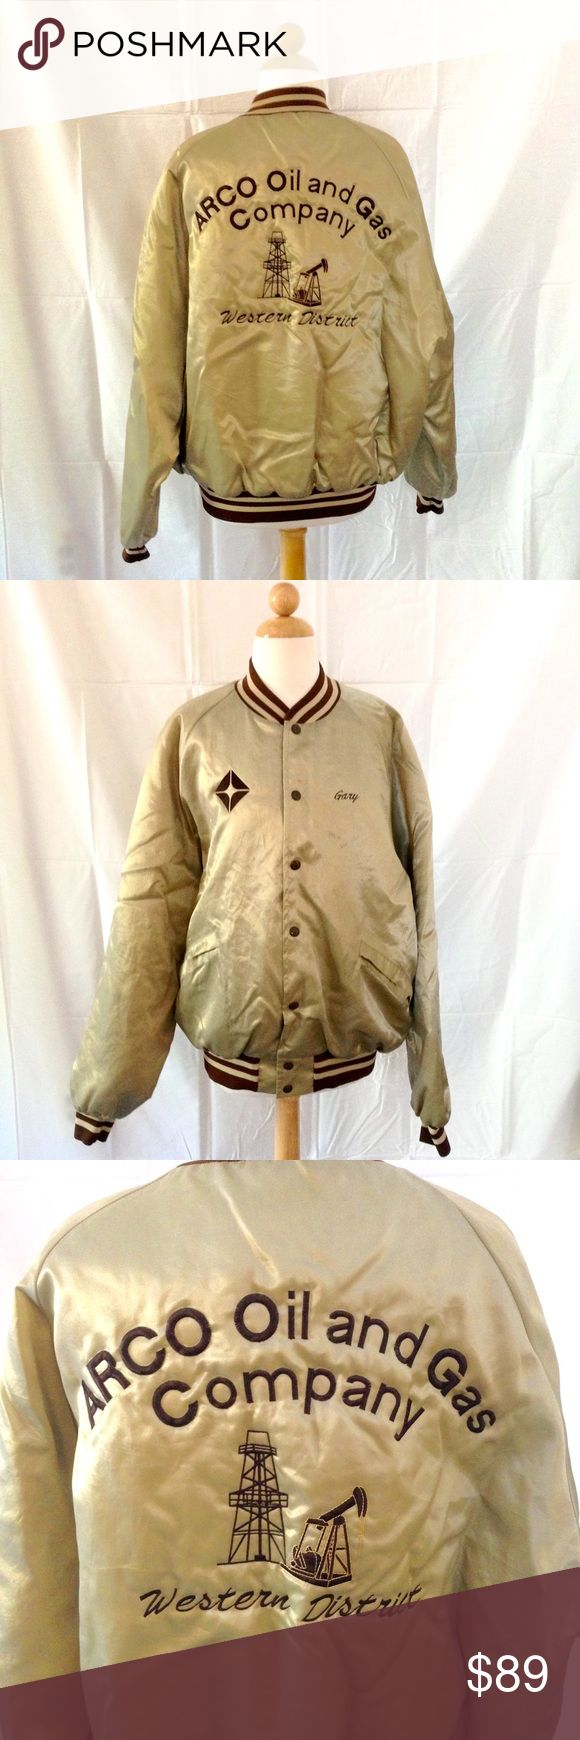 "RARE ARCO Oil & Gas Company Varsity Custom Jacket This is the only ARCO jacket I've ever come across. Just a badass jacket all around. A bit wrinkled. Found one tiny spot near the bottom button. Stitched name is ""Gary"". Size XL King Louie Jackets & Coats Bomber & Varsity"